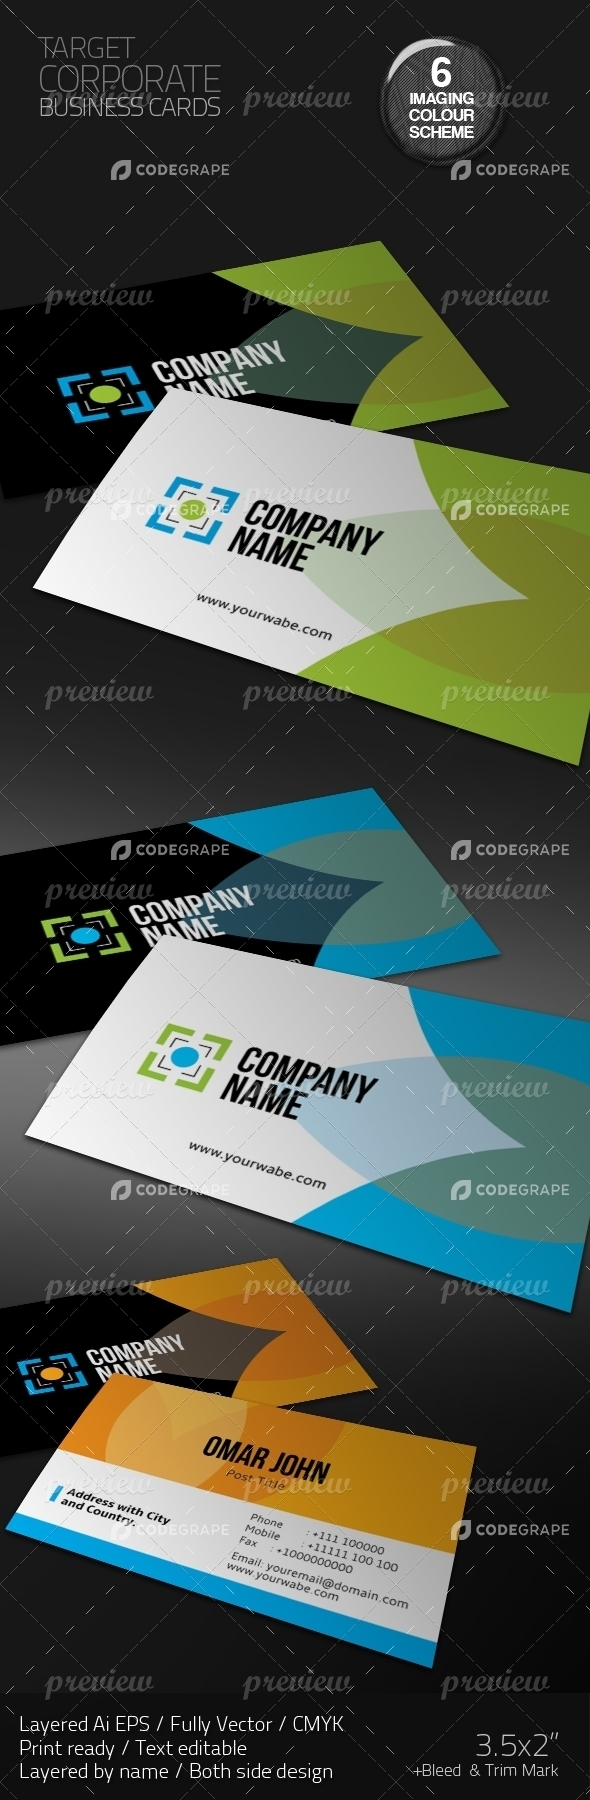 Target Corporate Business Cards